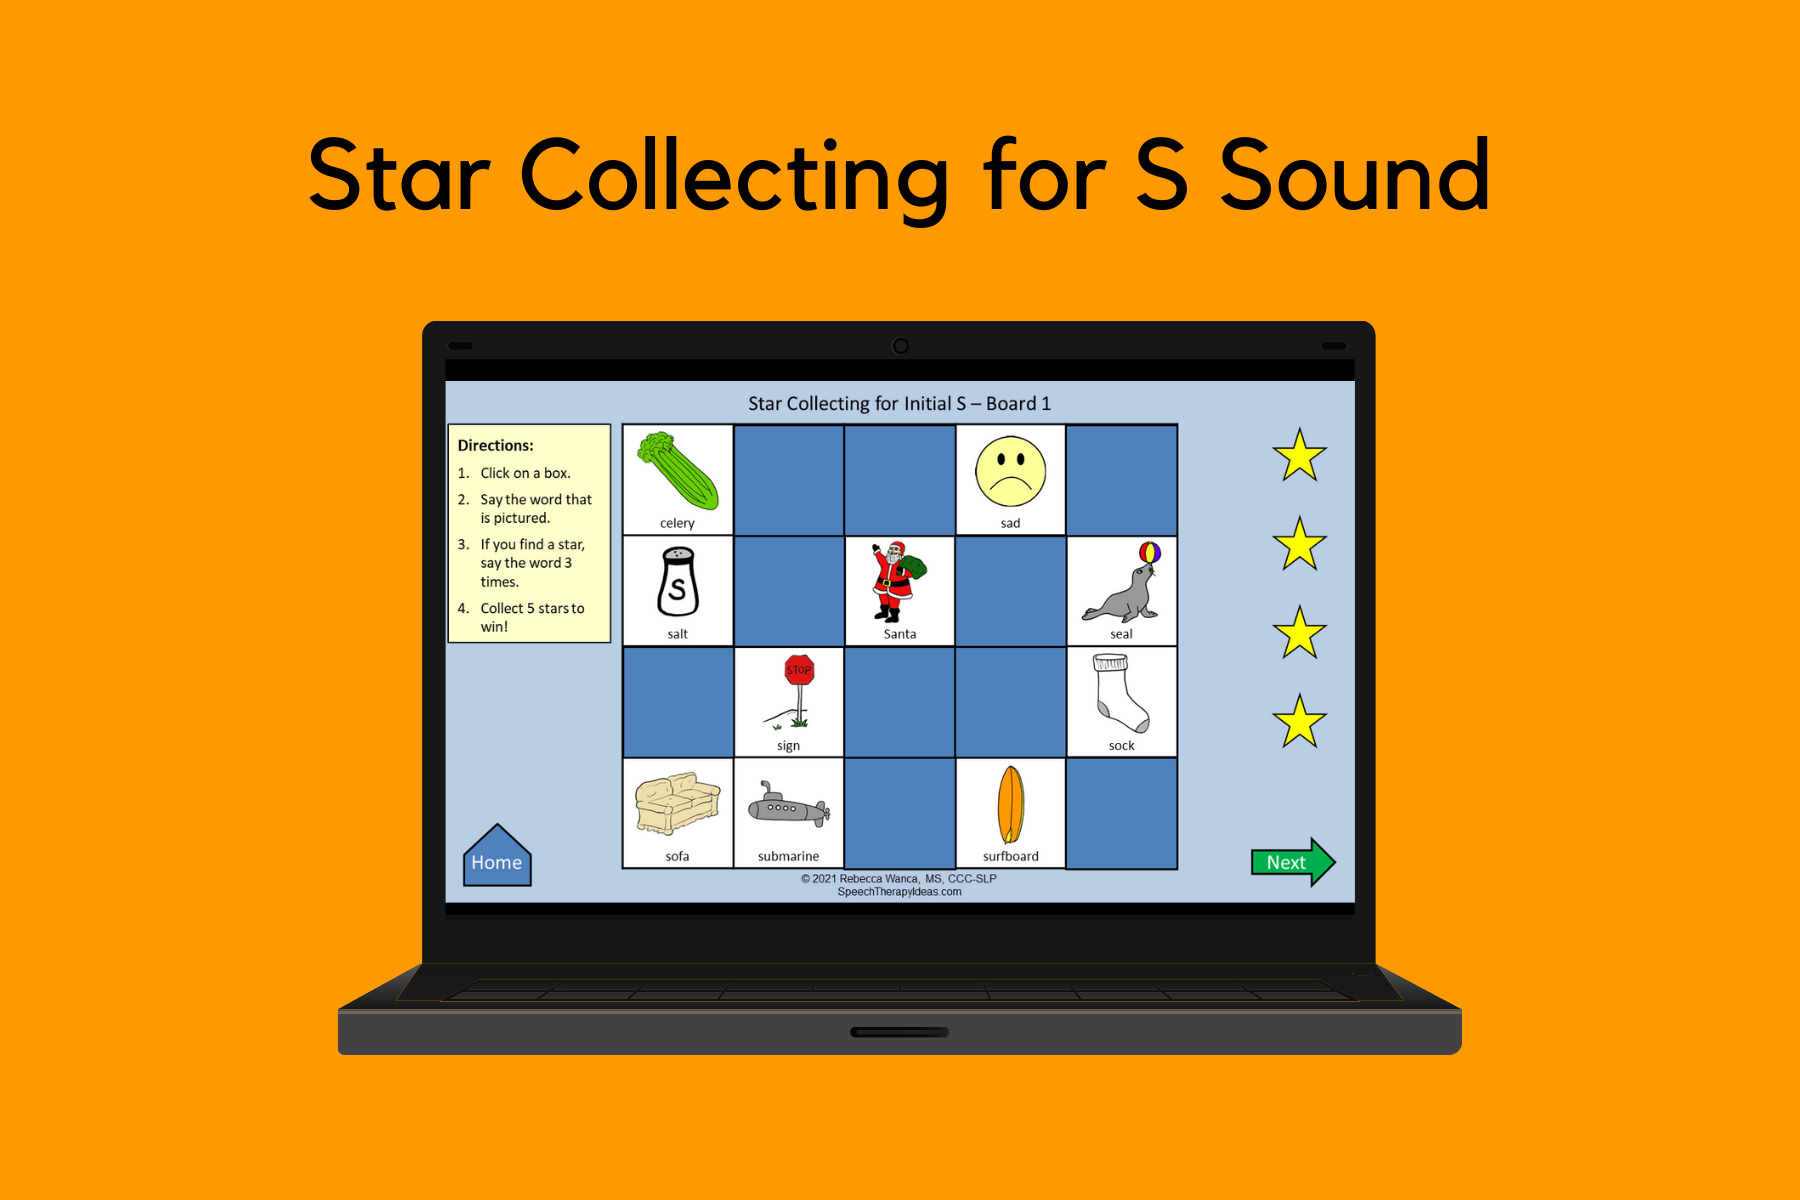 Star Collecting for S Sound